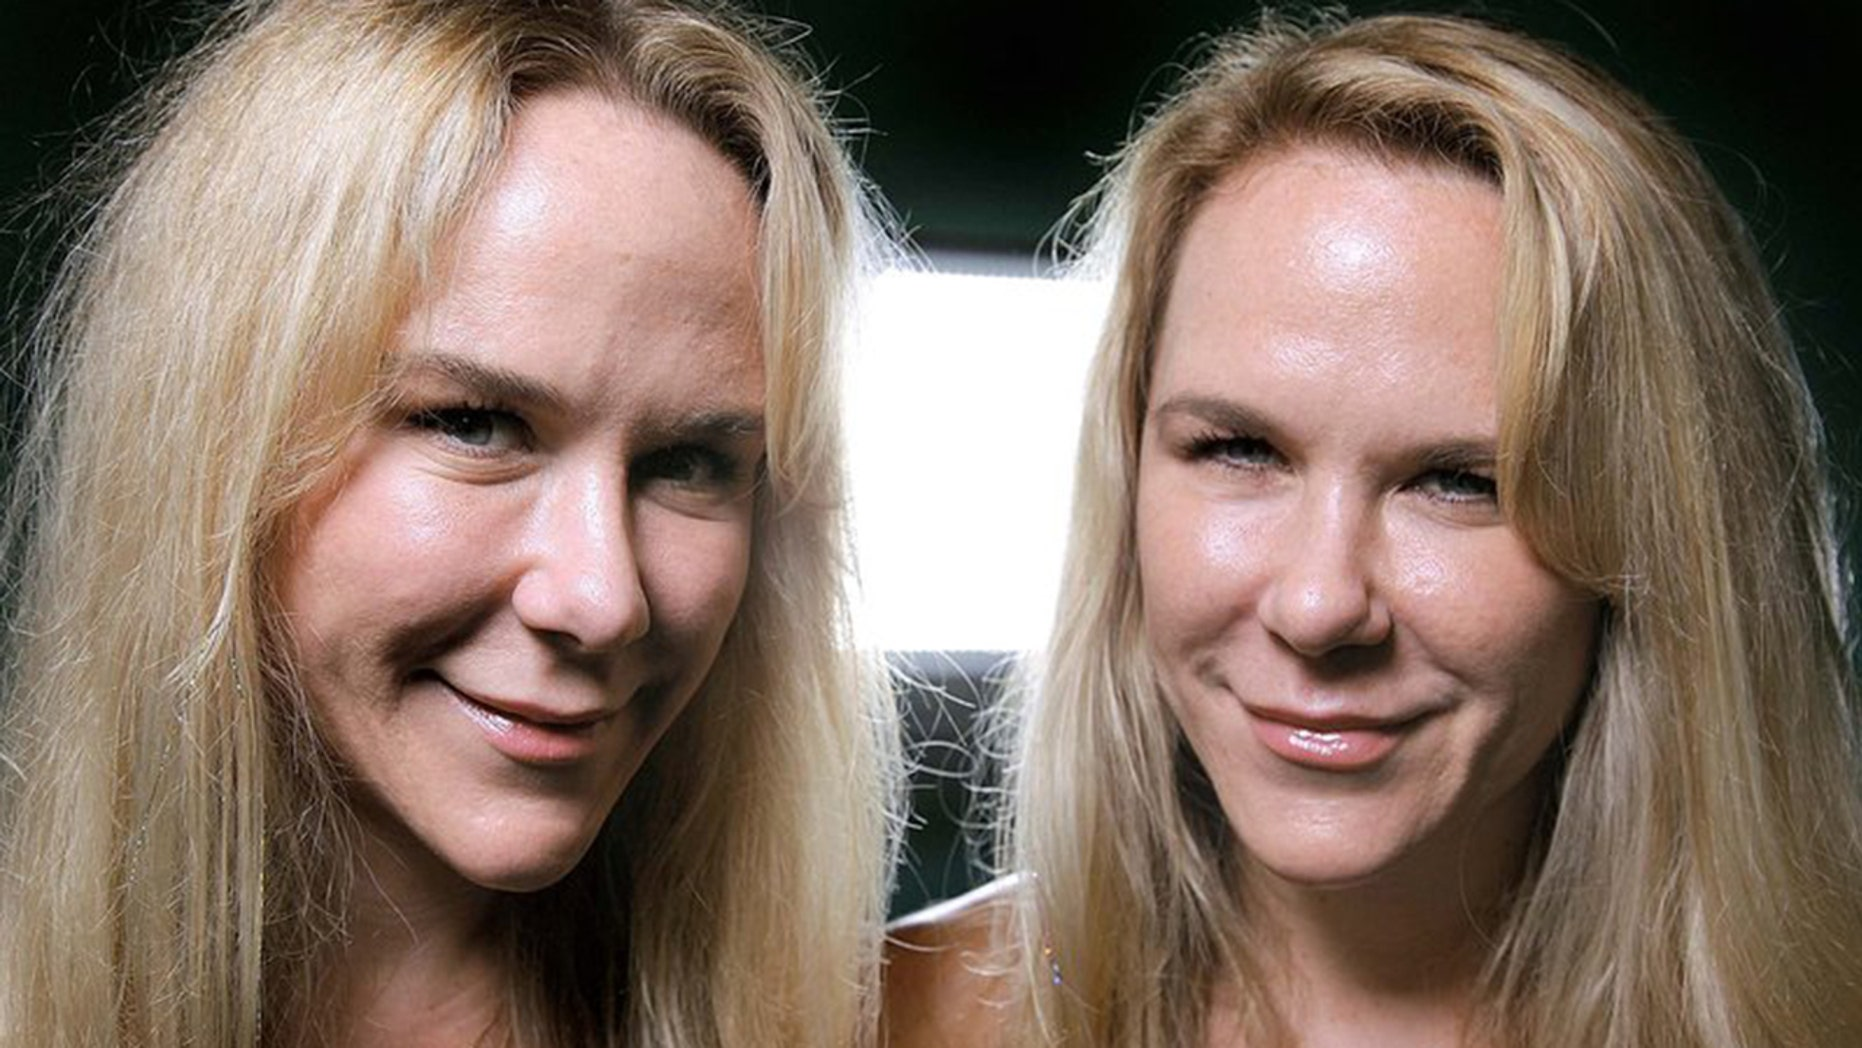 Alexandria Duval, left, has been accused of deliberately driving off a Maui cliff killing her twin sister, Anastasia, right, in 2016.